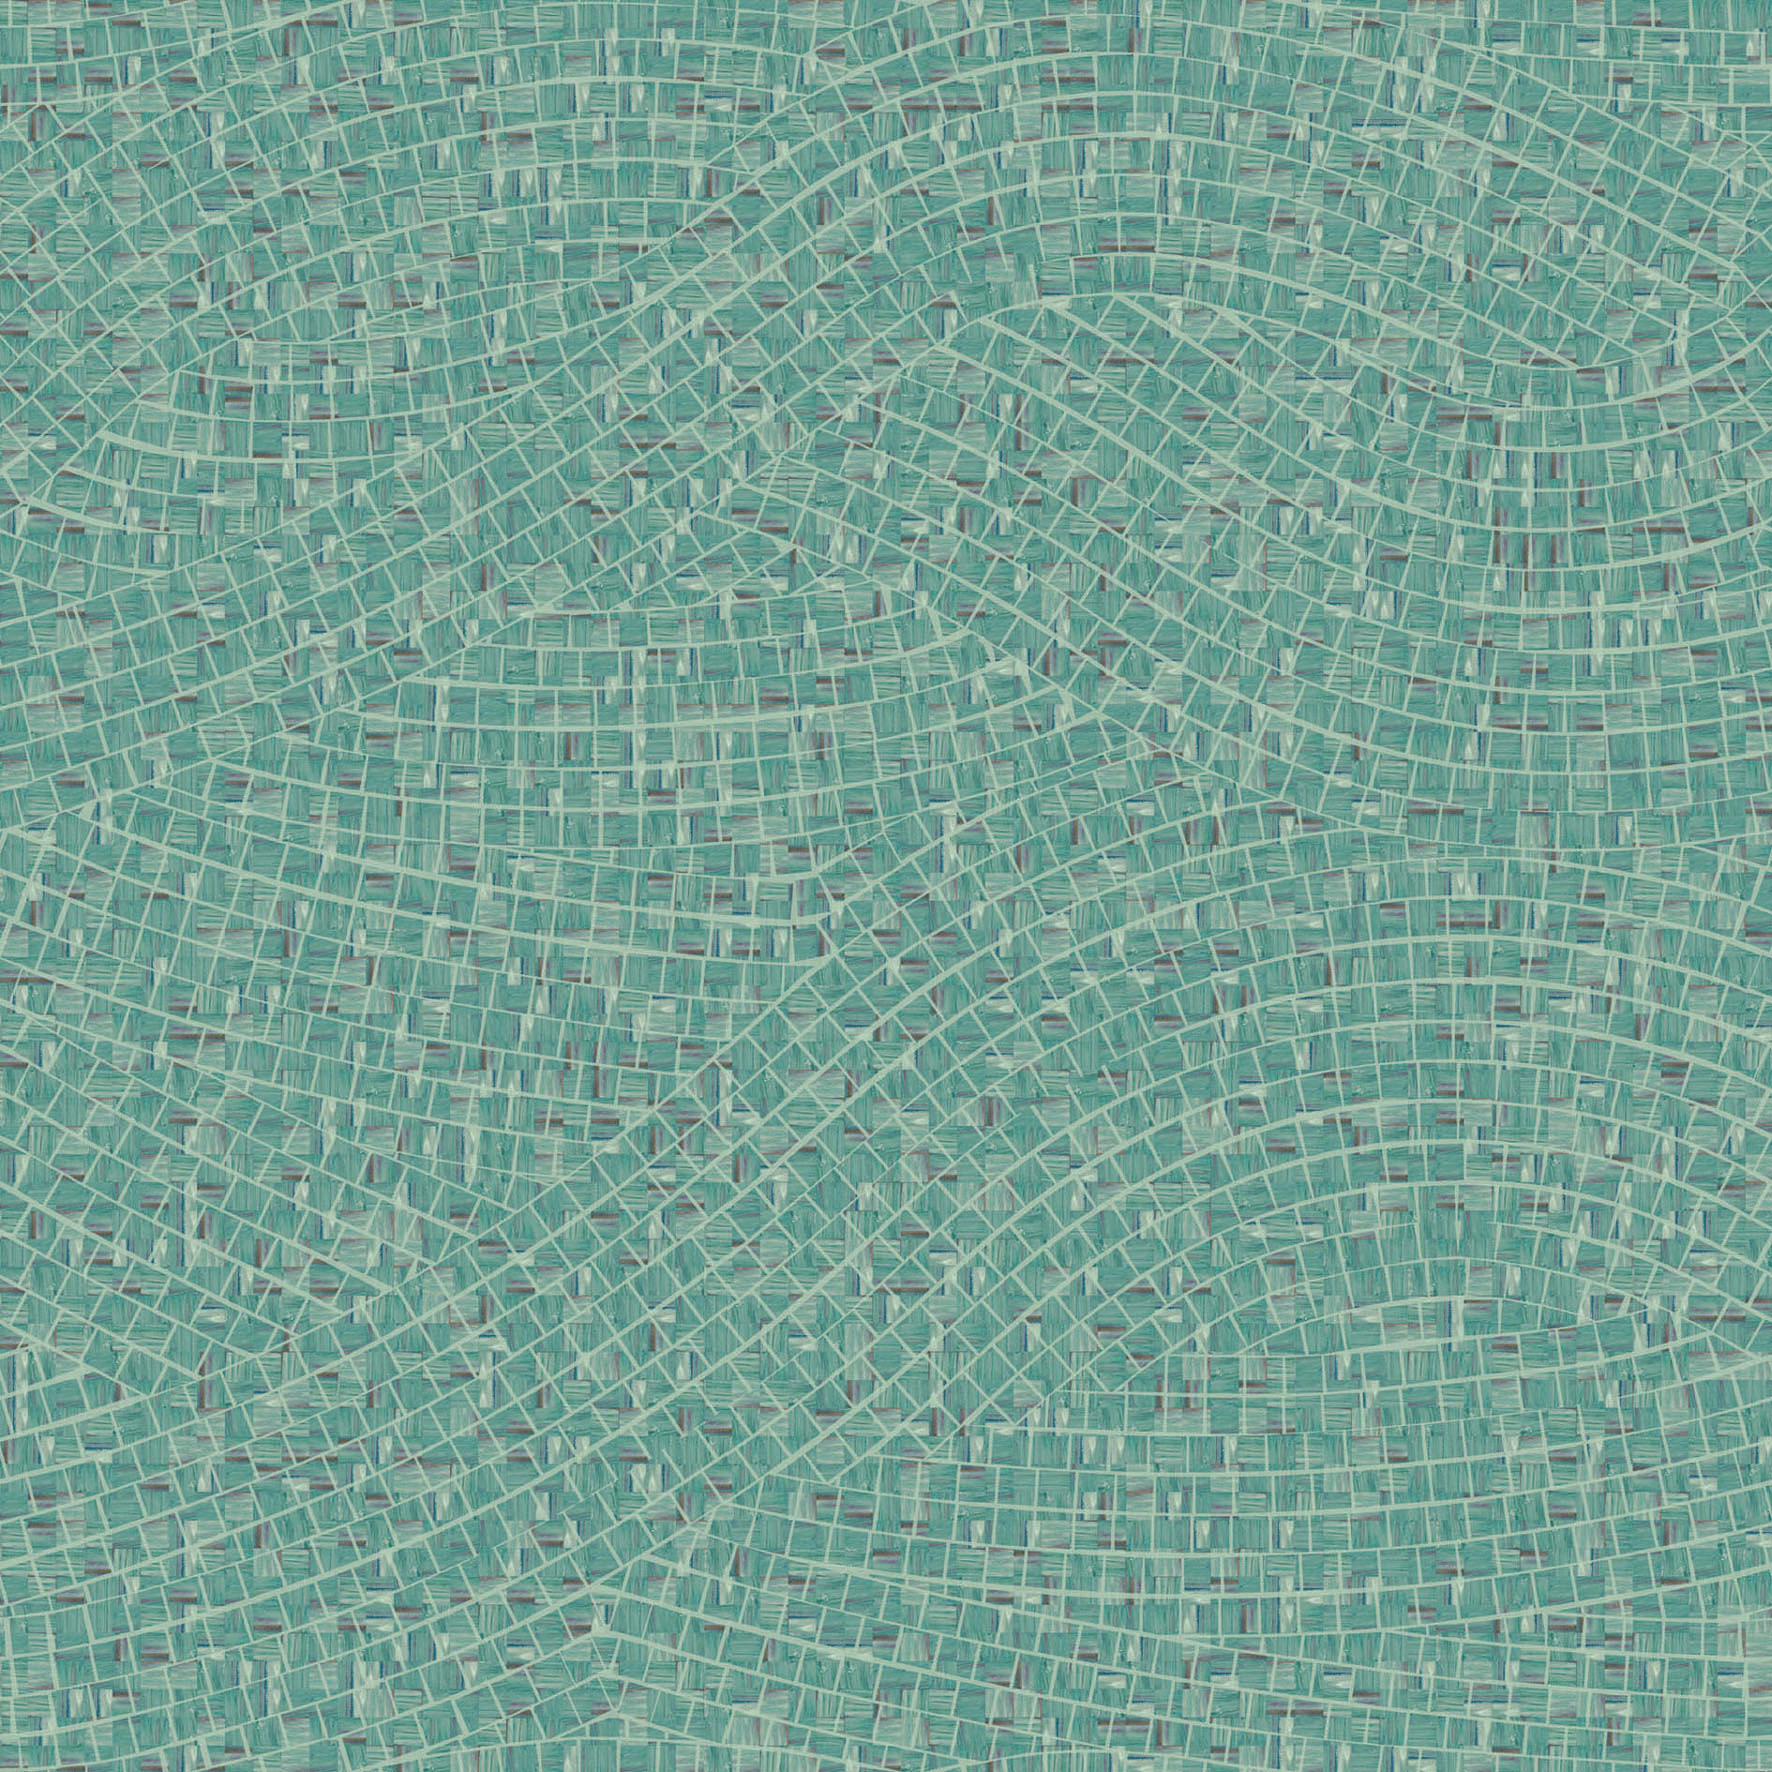 Handmade Decorative Tiles Fascinating Wave Gm2032 Pattern In Bisazza Glass Mosaic 20X20Mm Tiles Decorating Inspiration